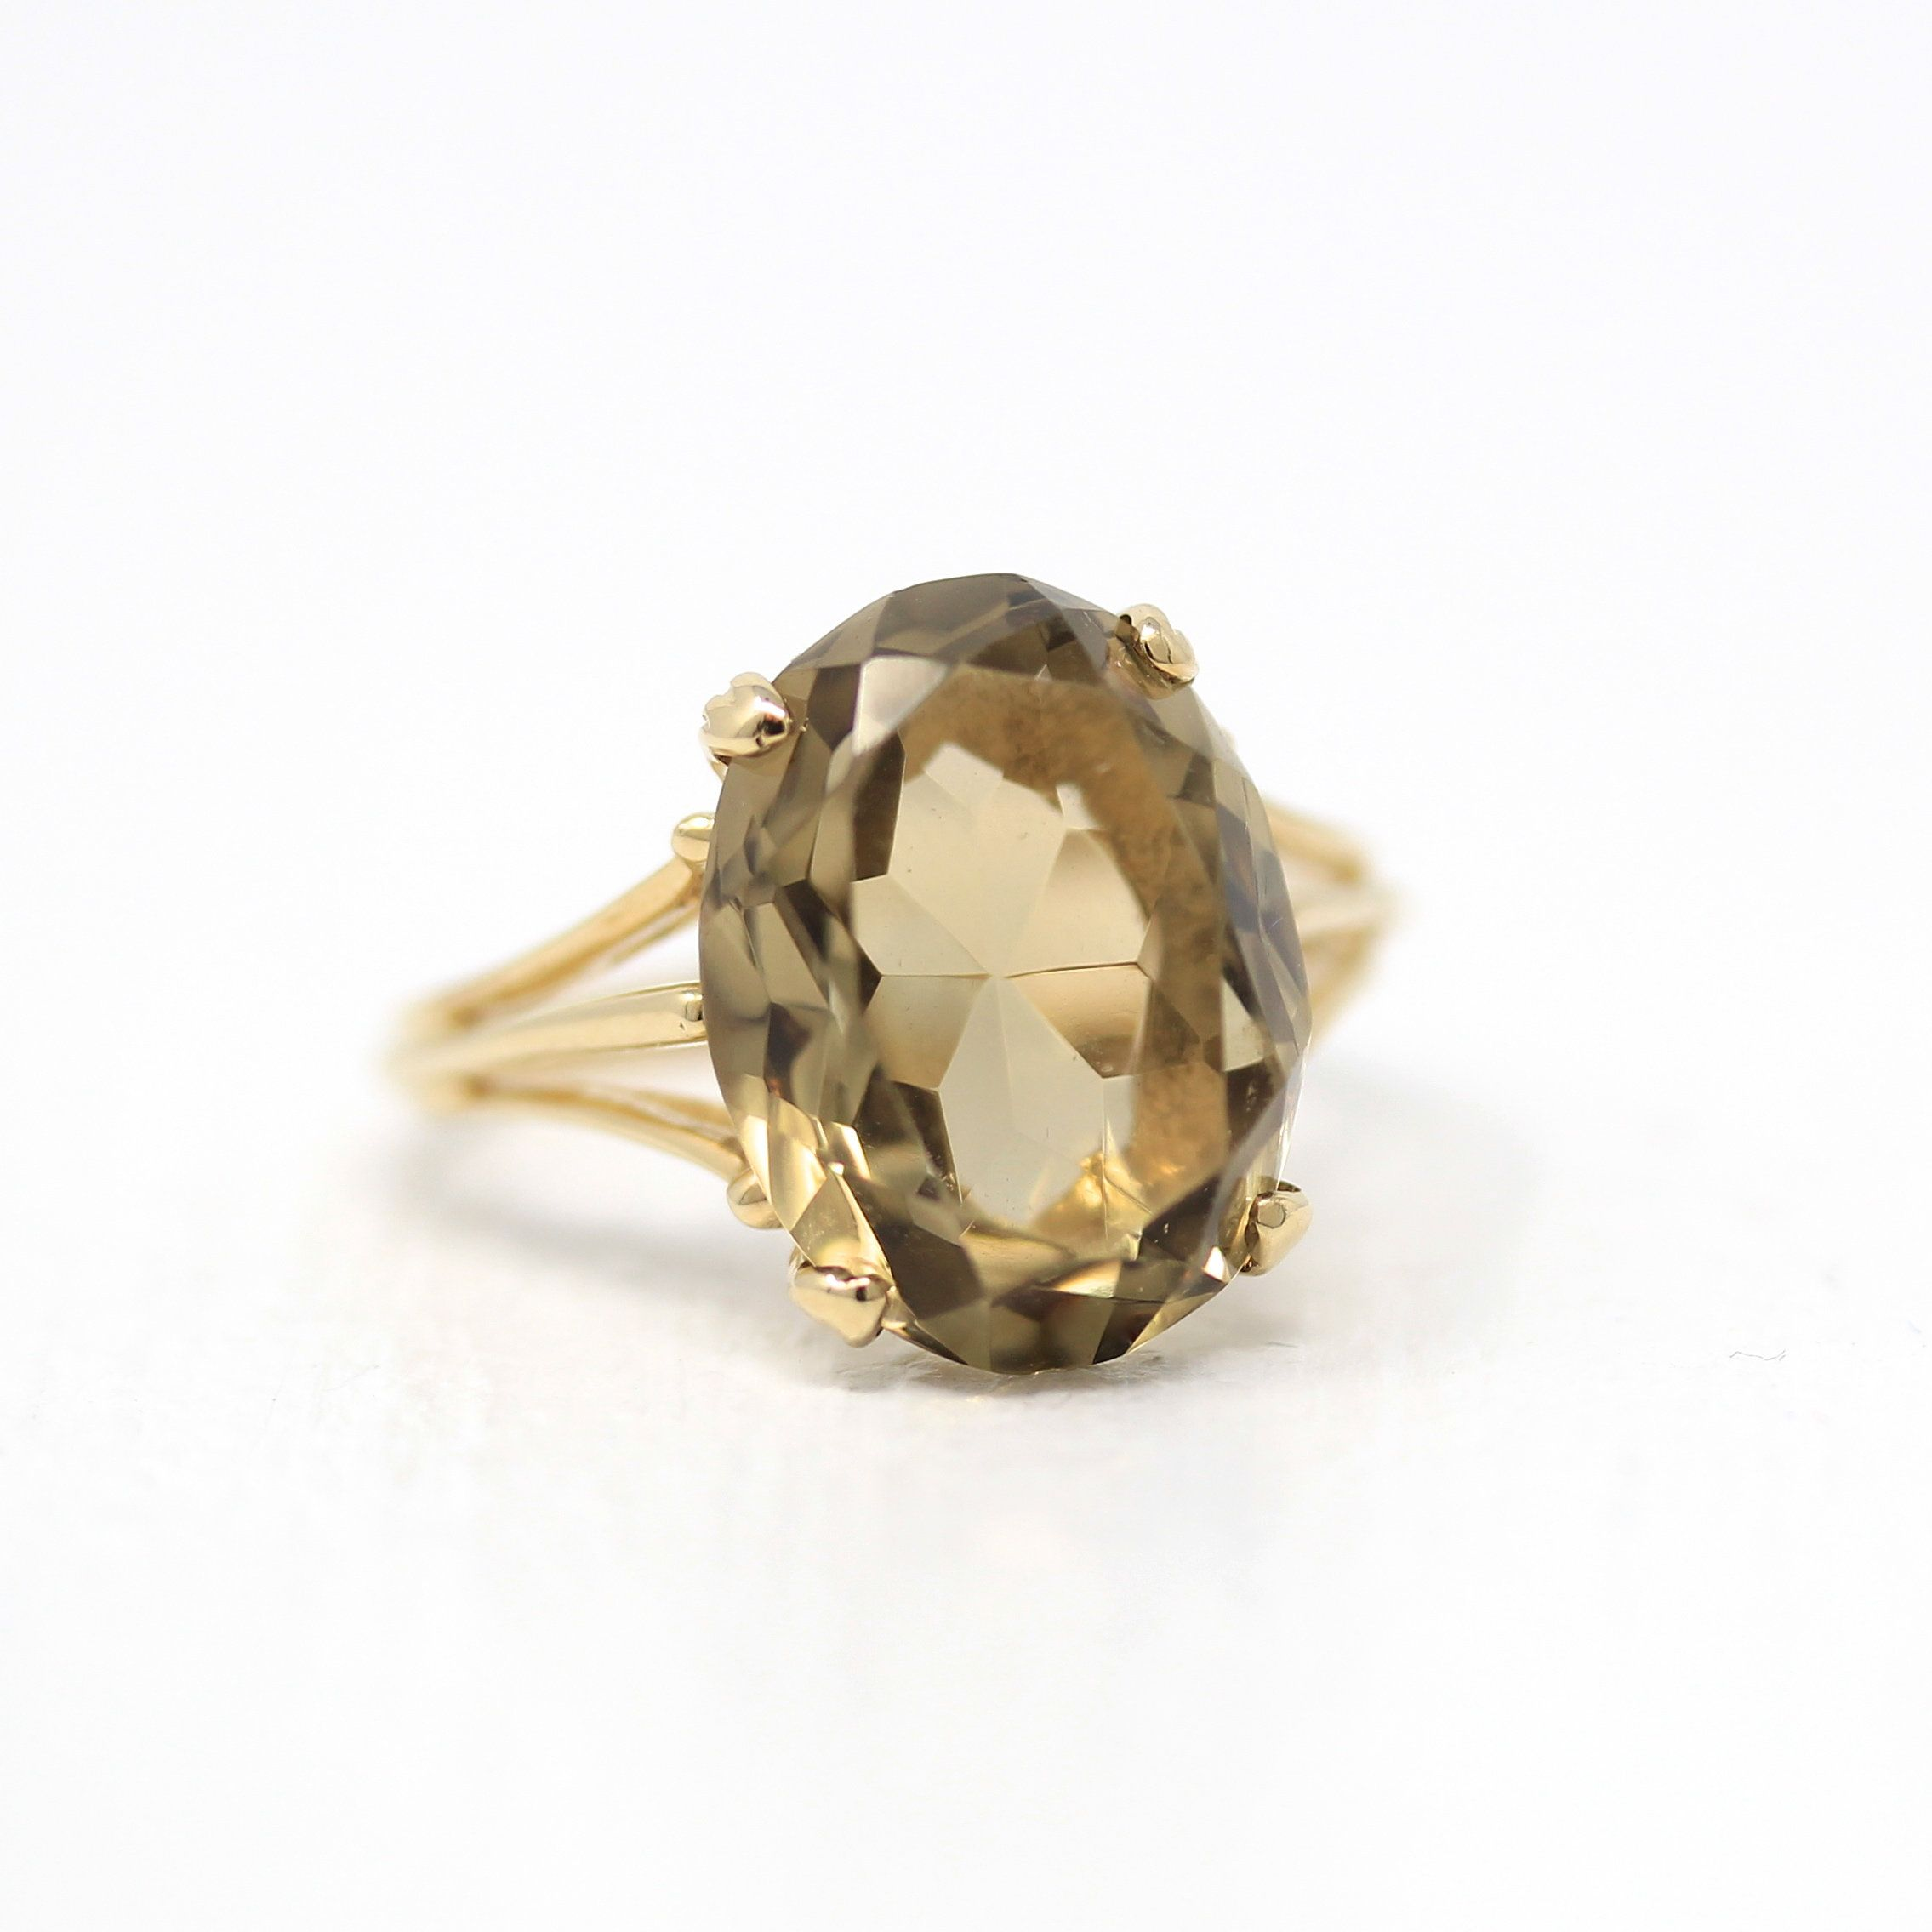 Genuine Citrine Ring Vintage 10k Yellow Gold Brown Yellow 8 Carat Quartz Gem Statement Size 8 Retro November Bi Genuine Citrine Citrine Ring Vintage Rings